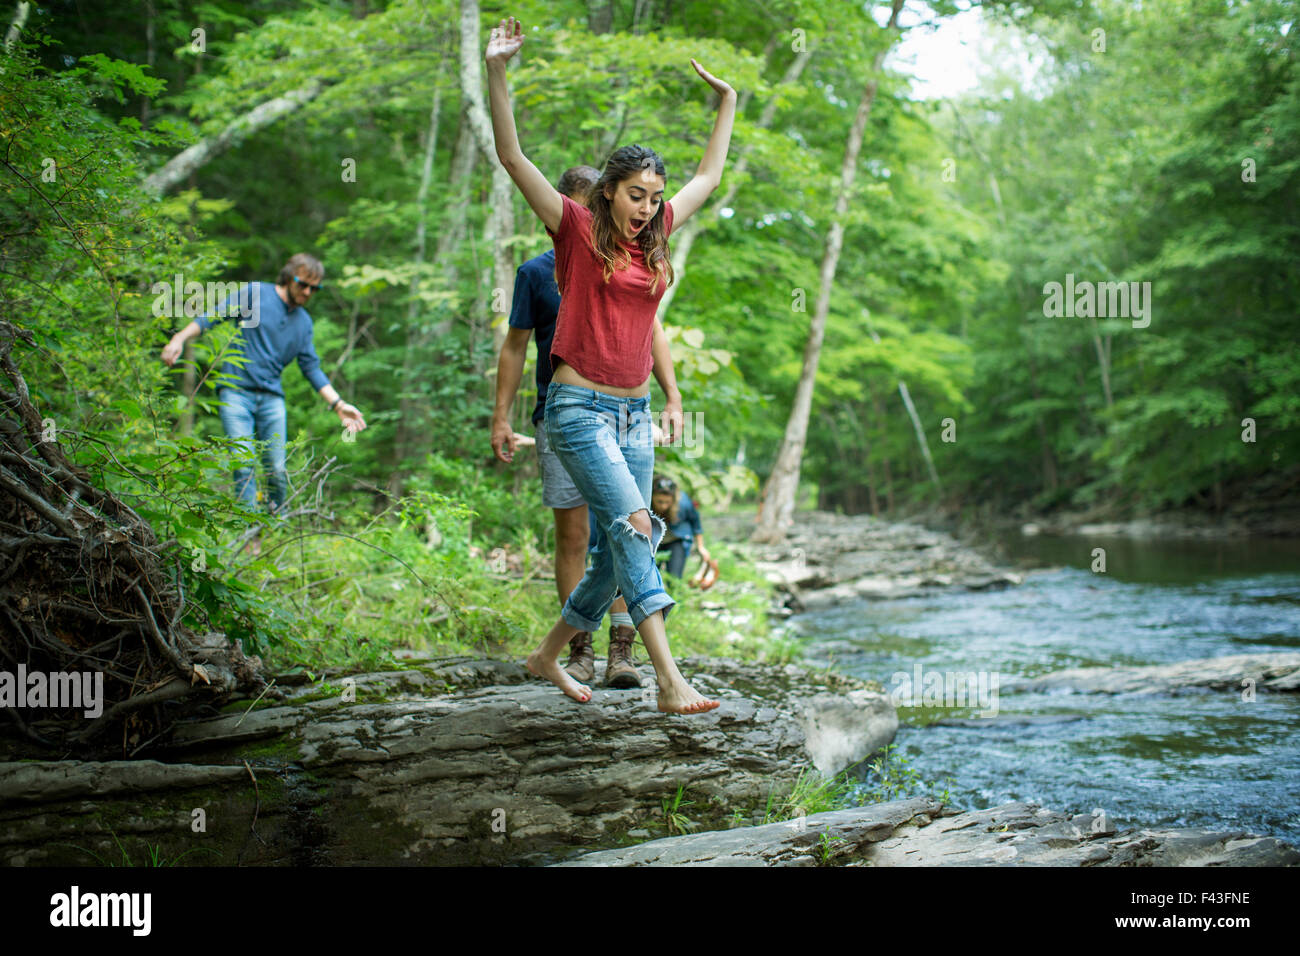 Two men and two women on the riverbank, one leaping across stepping stones. - Stock Image